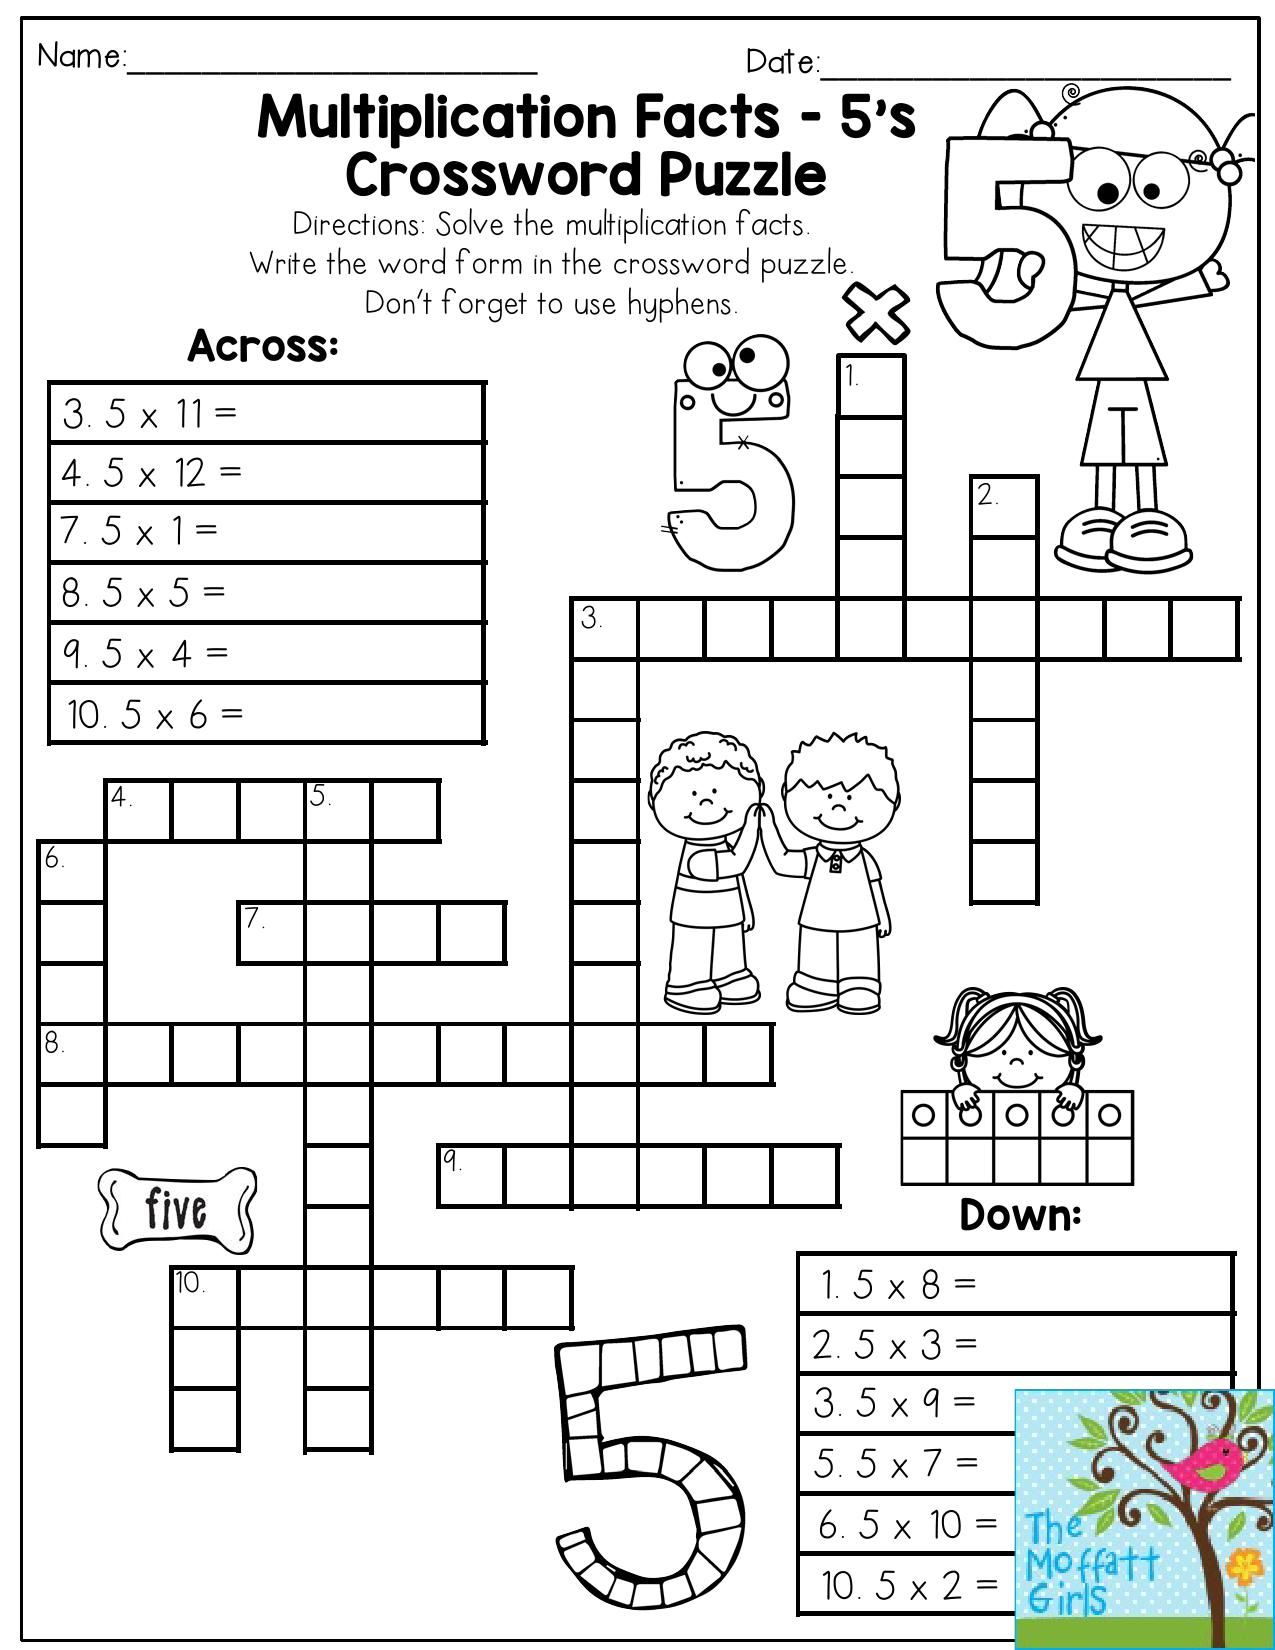 Multiplication Facts Crossword Puzzle- Third Grade Students Love - Printable Crossword Puzzle For 4Th Graders